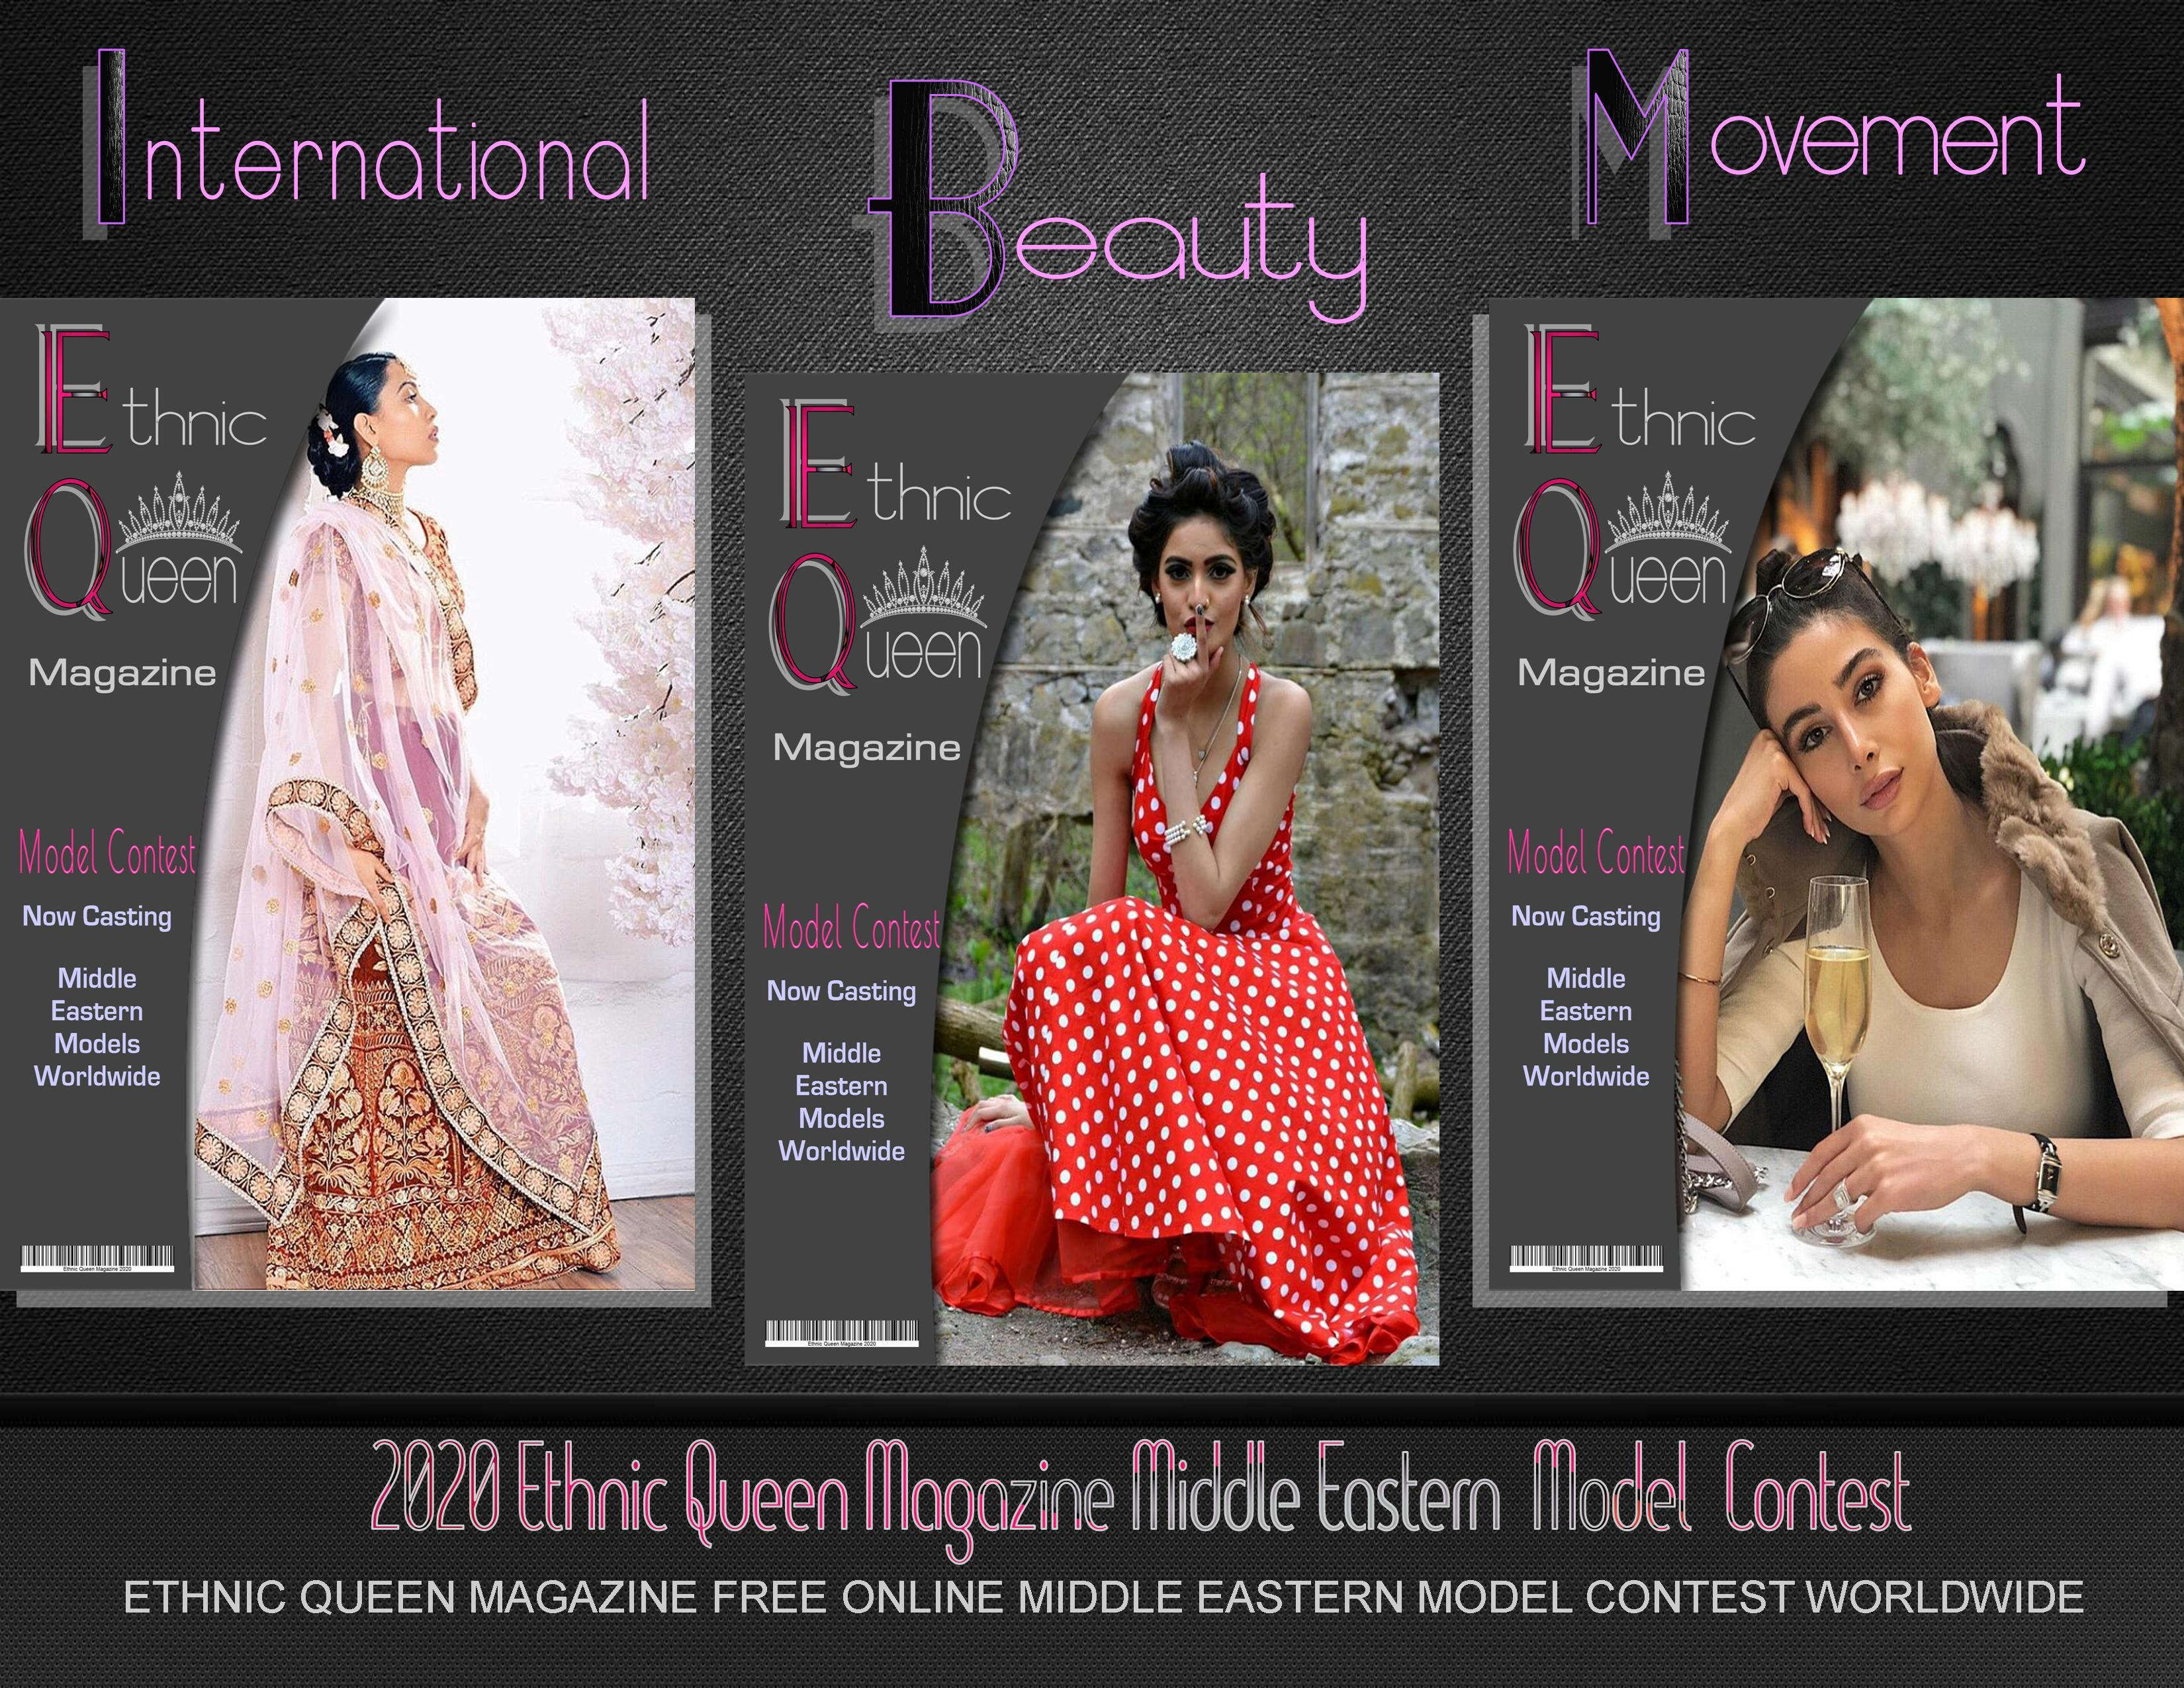 Ethnic Queen Magazine Middle Eastern Cover Model Contest Free Online